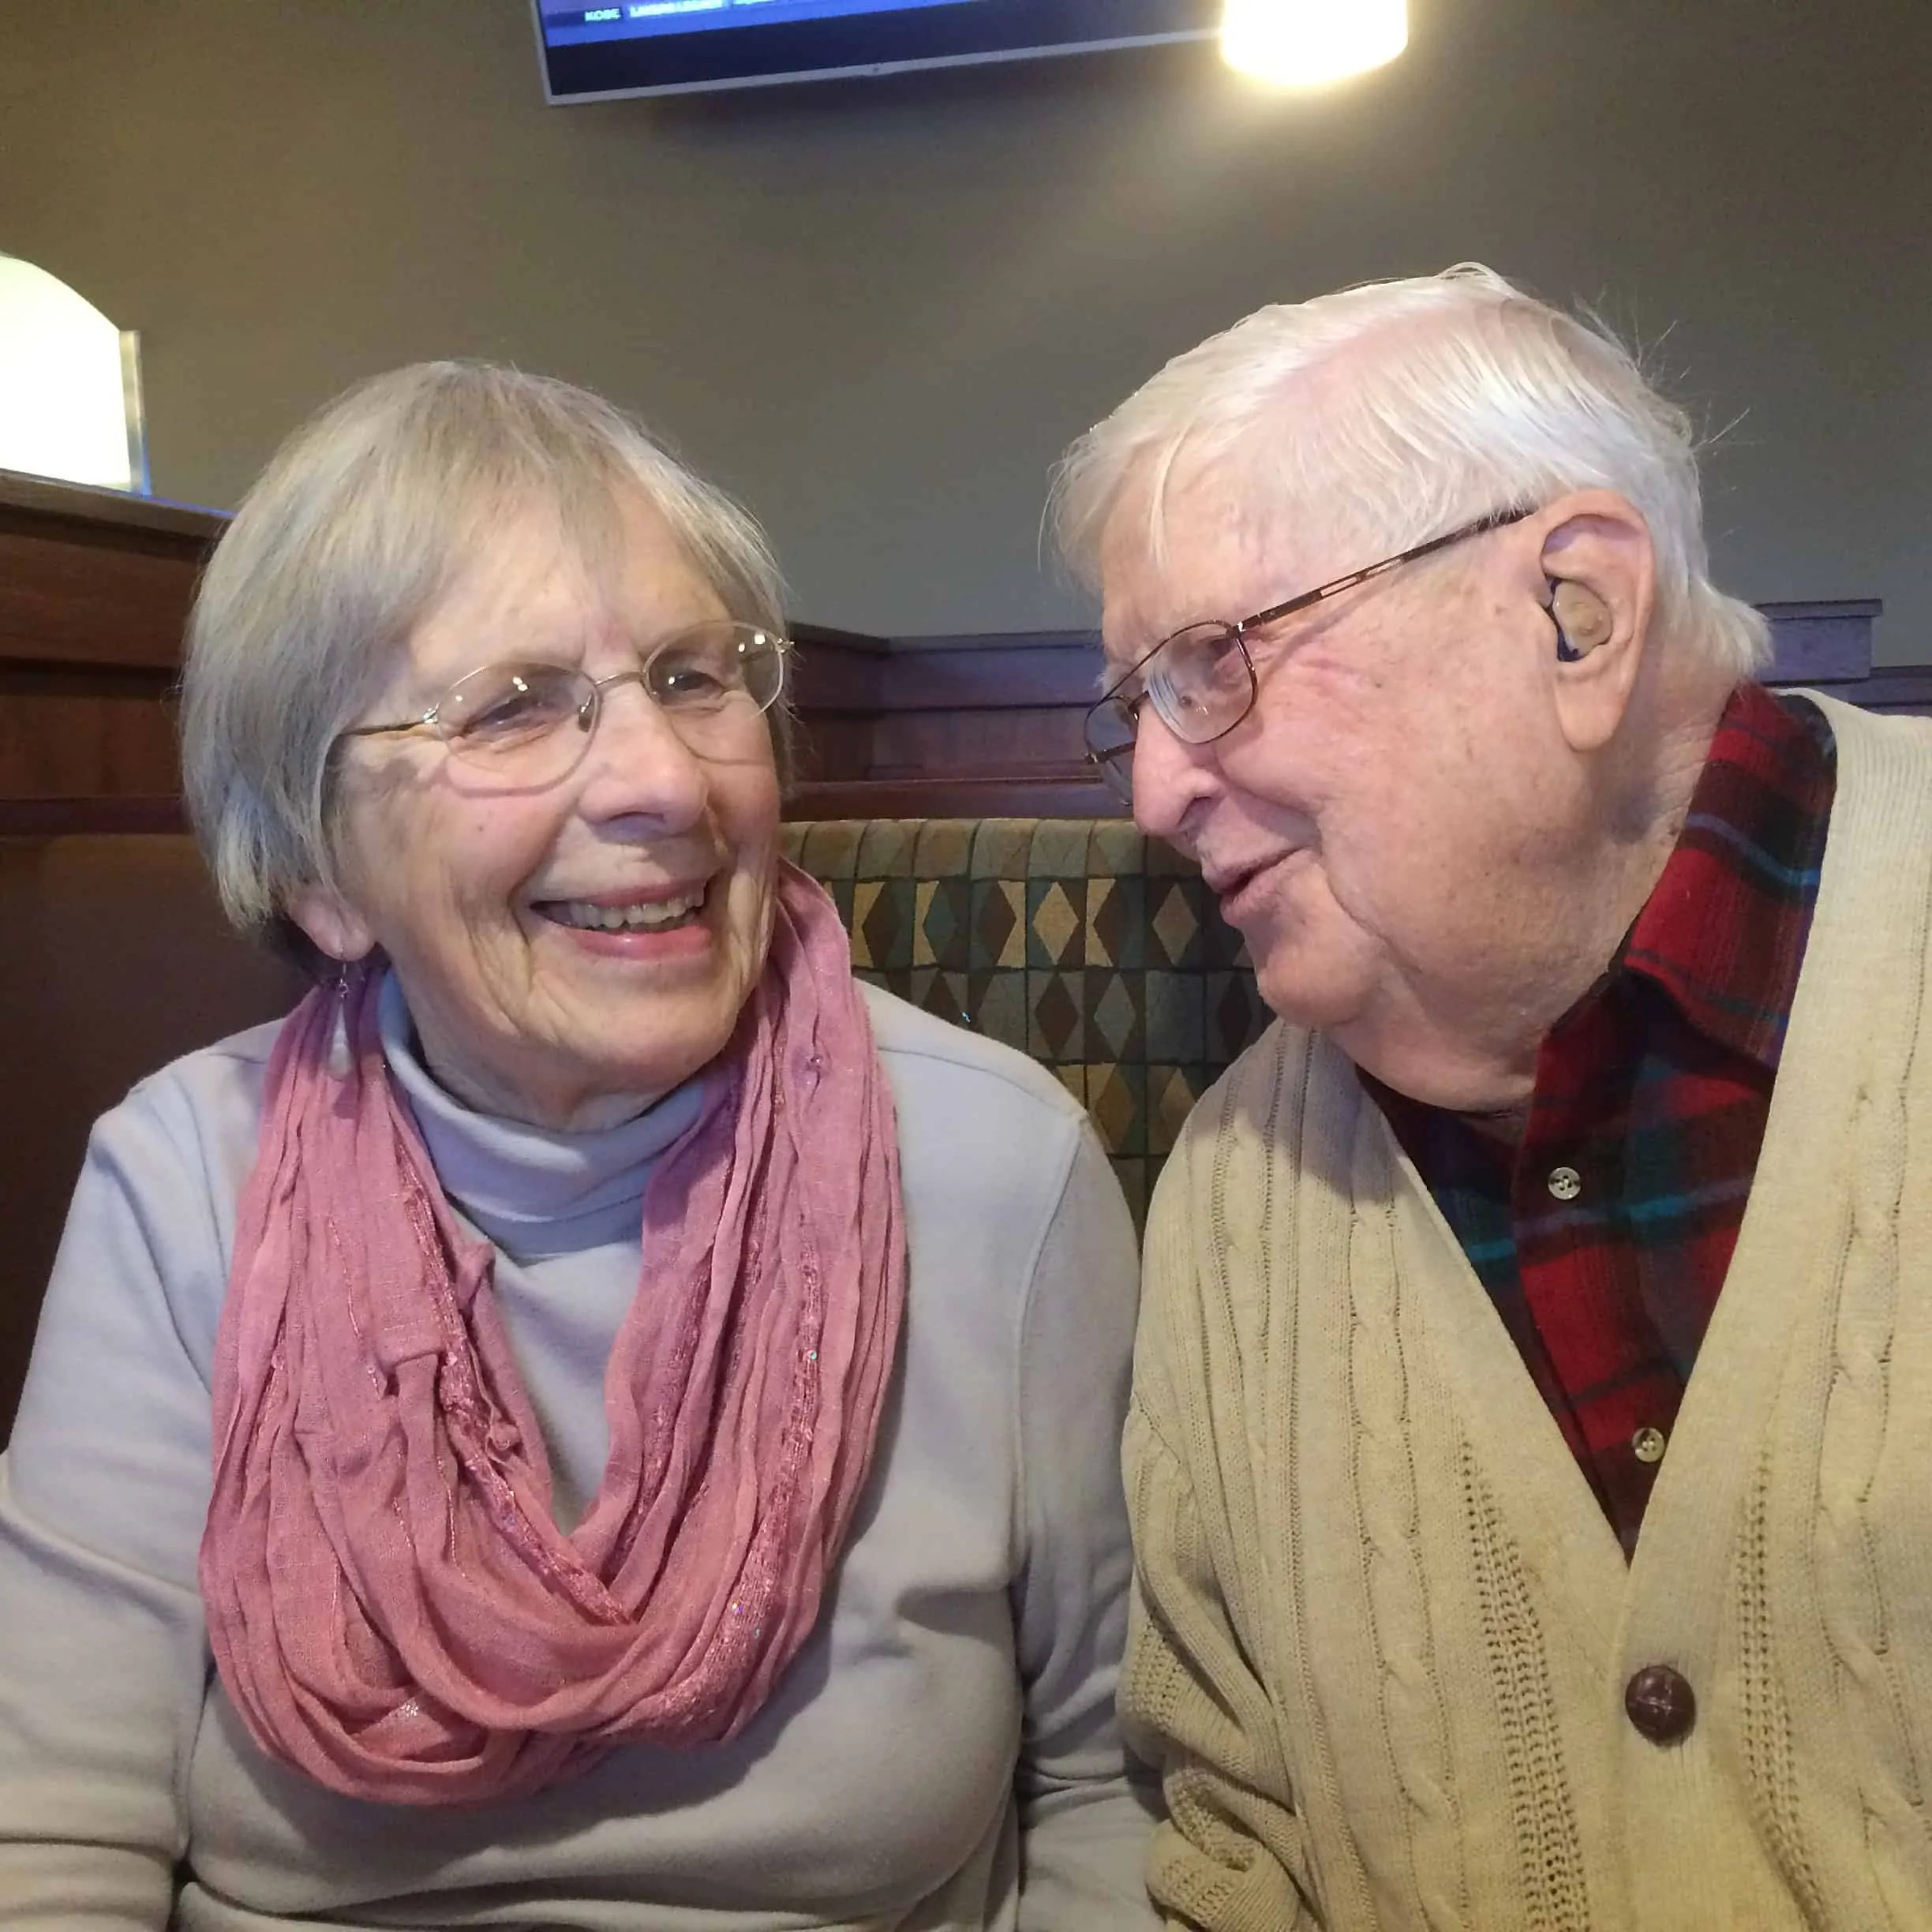 Breakfast with my parents the day before the cardiac catheterization.